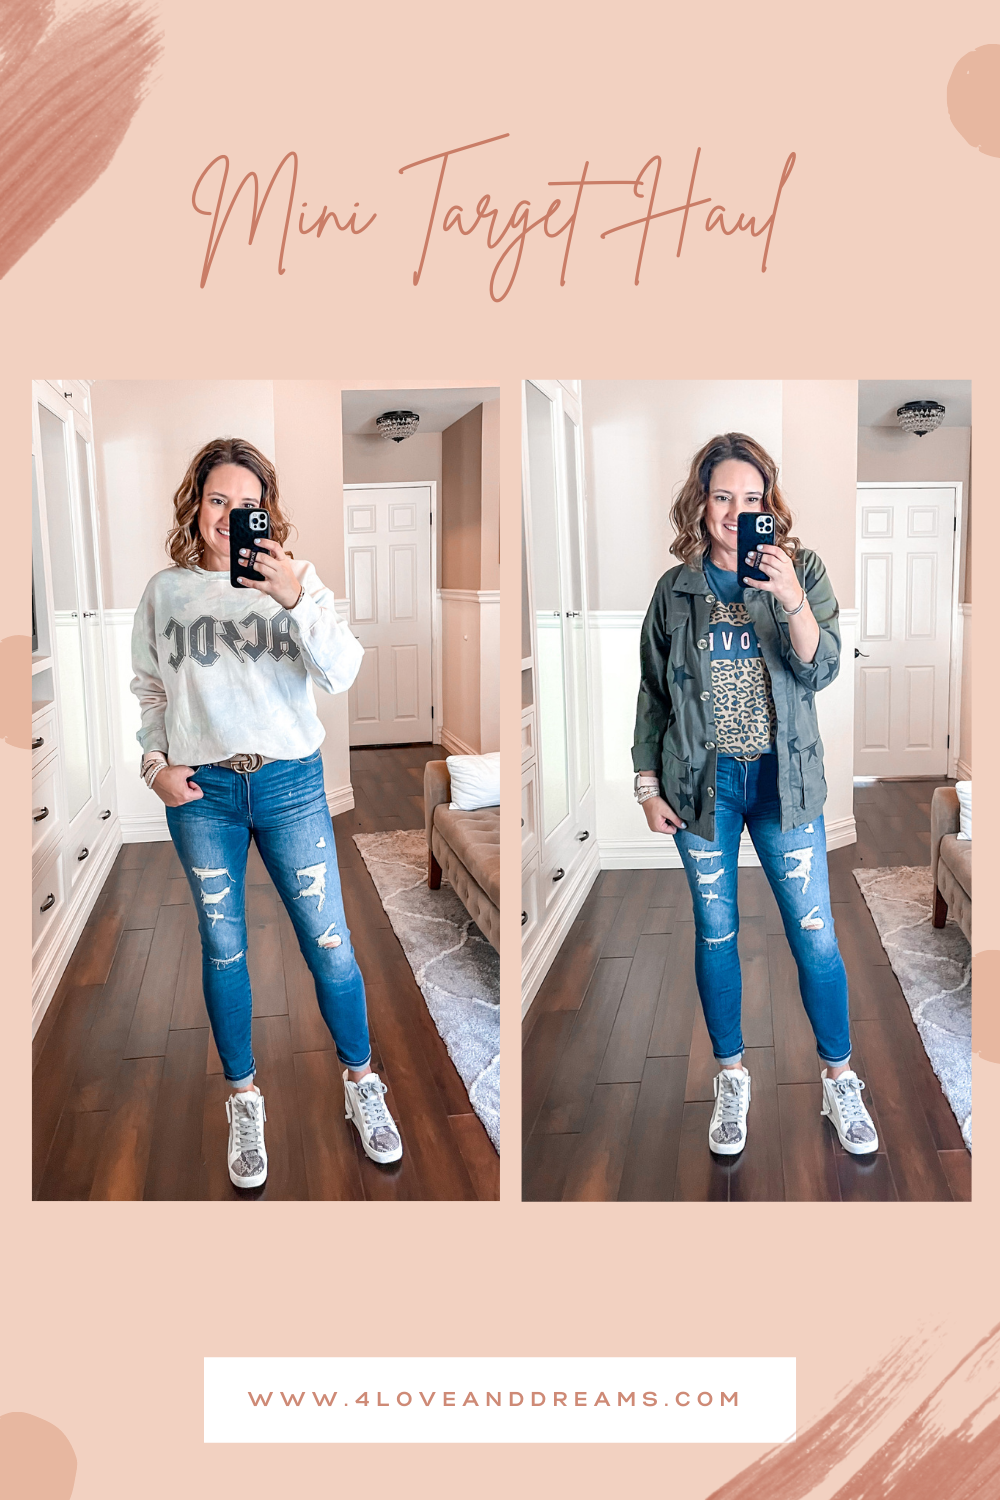 target haul. target outfits. valentines day look. affordable looks. mom style